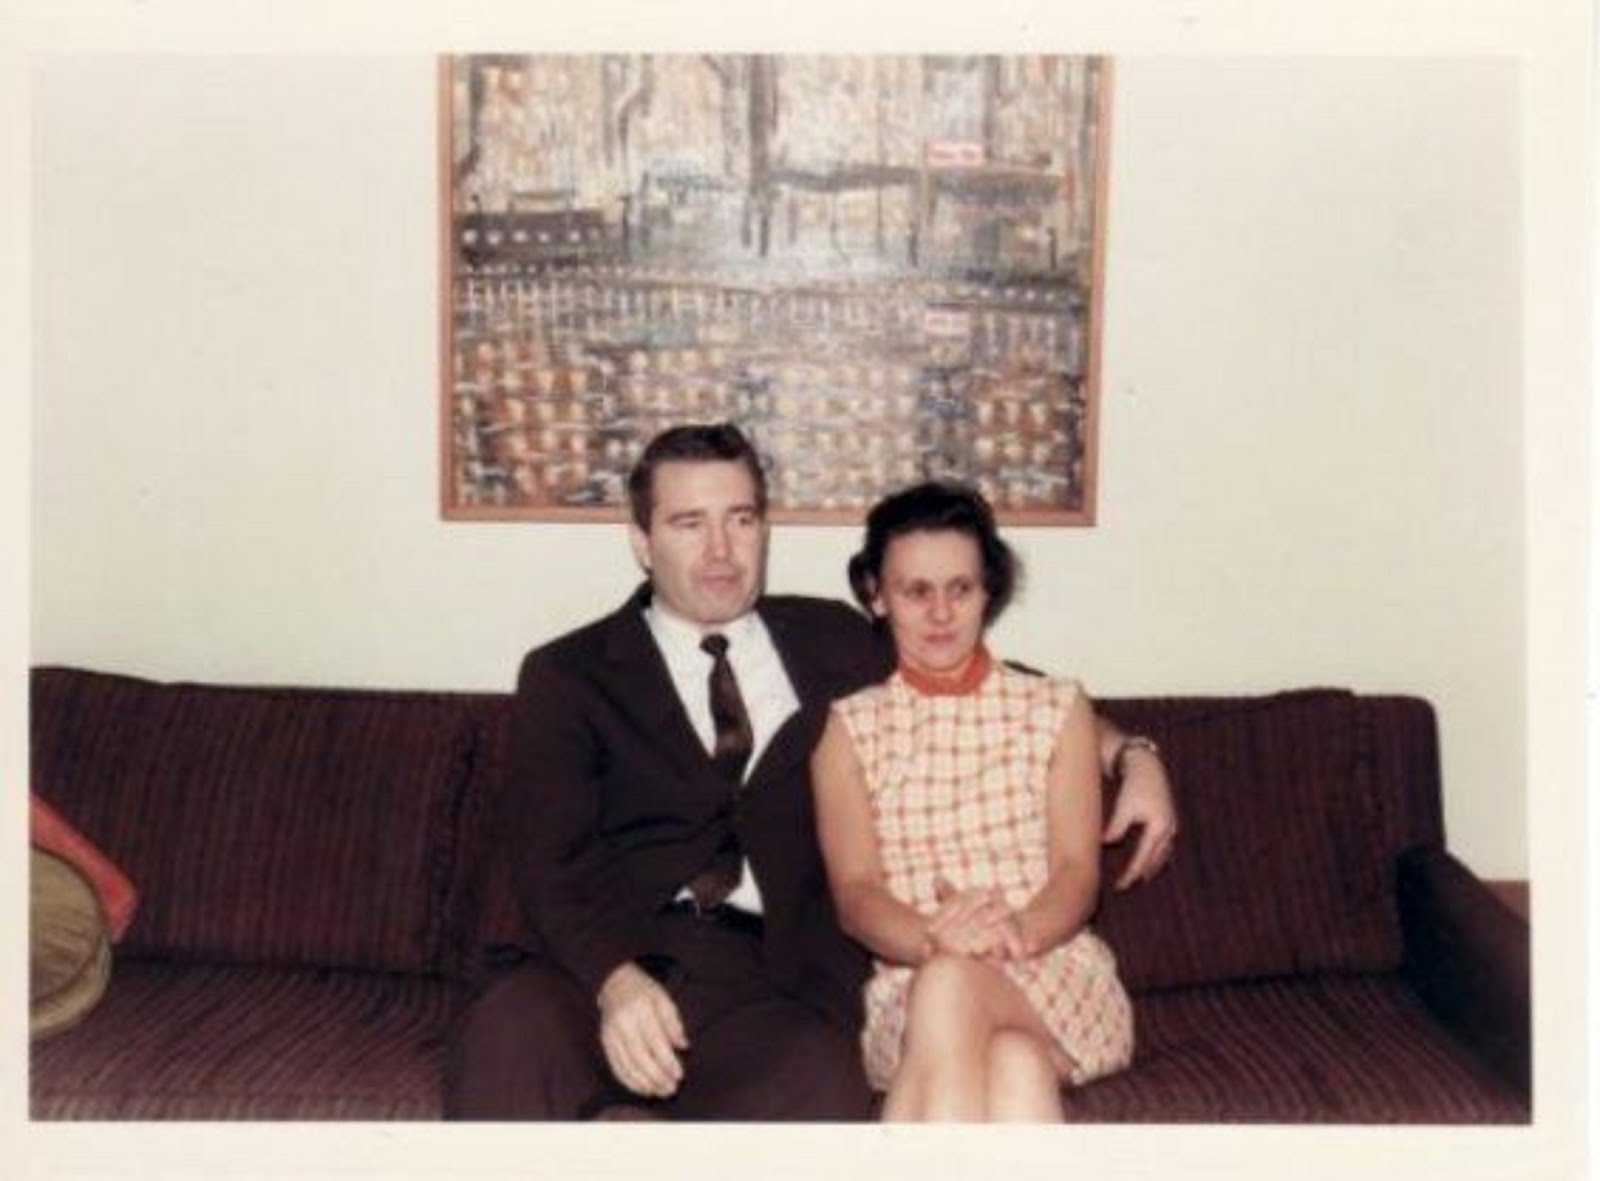 MEET MY FAMILY: MY DAD ZELMAR AND MY MOM IRENE PAYNE.  JAN 19th, 1969 THE NIGHT I LEFT FOR VIETNAM